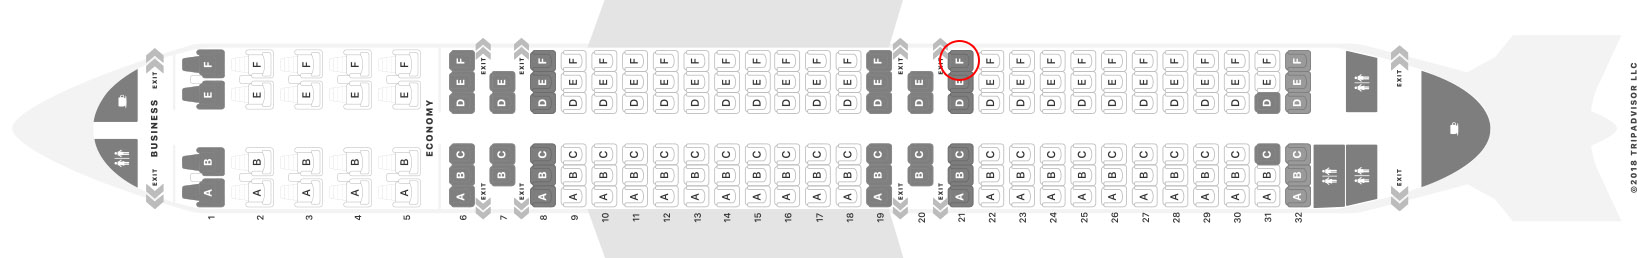 Turkish Airlines A321 seat map